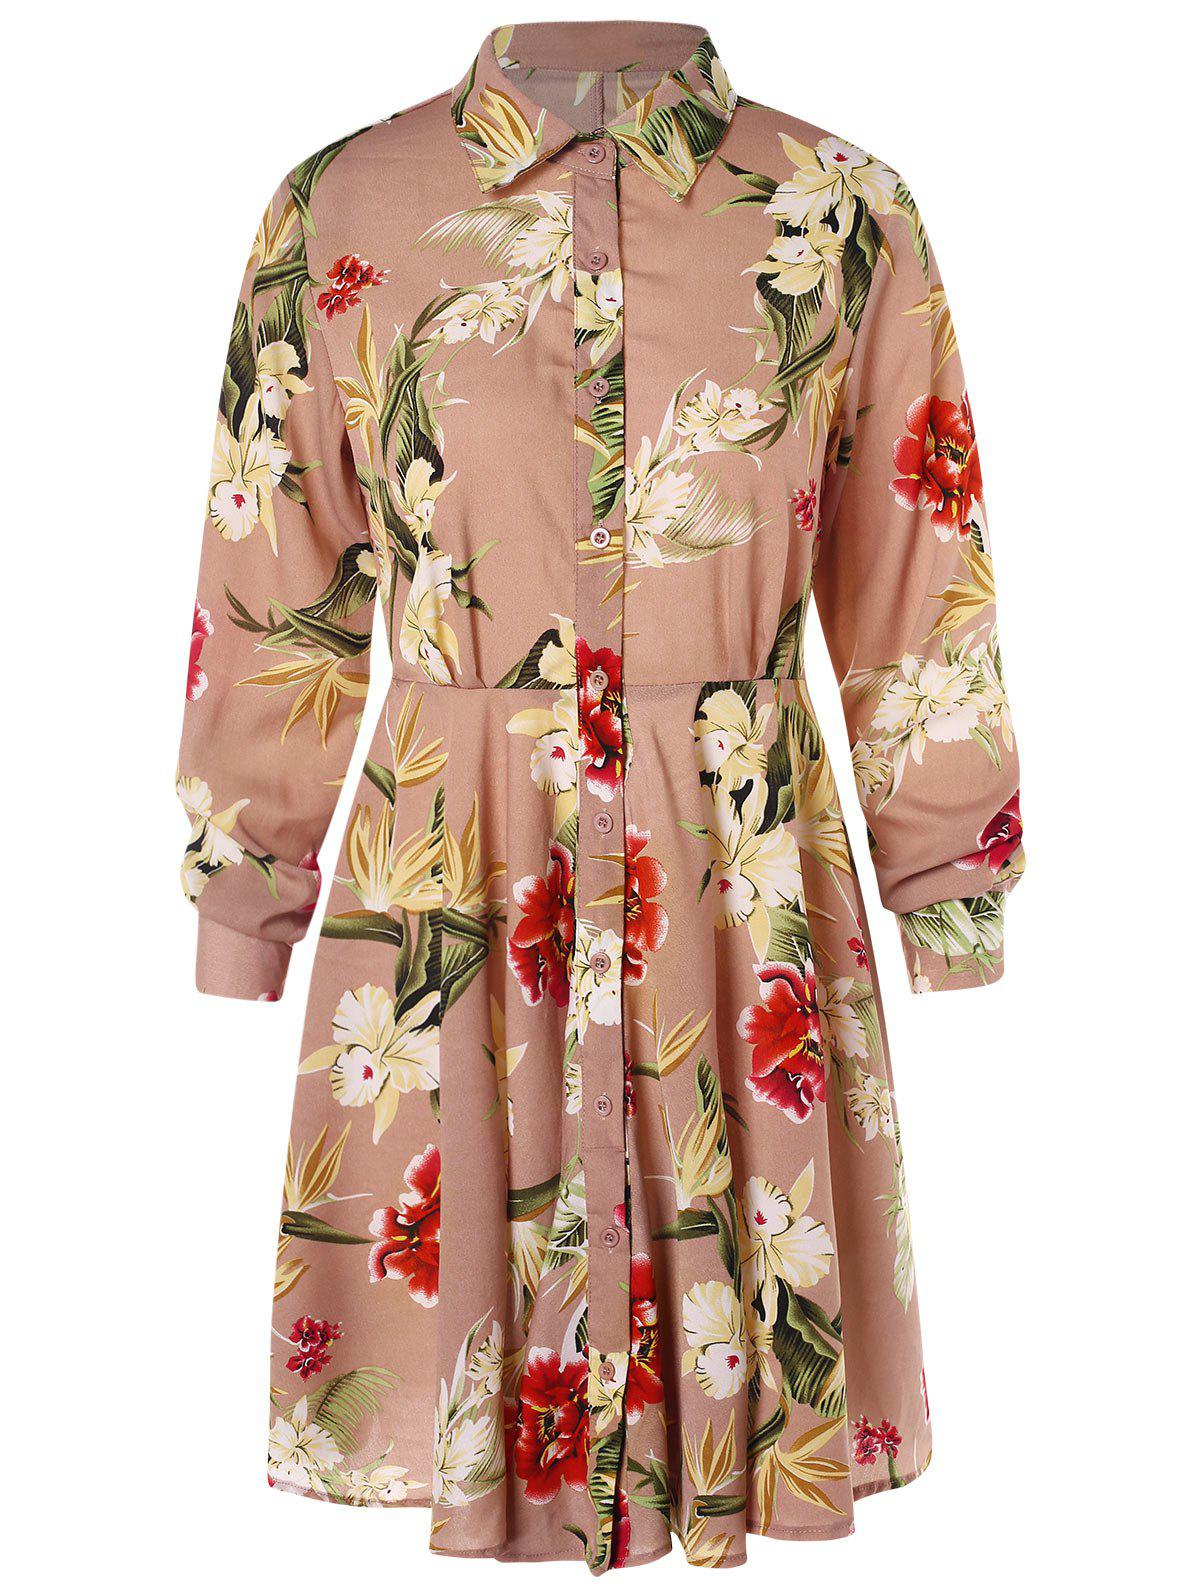 Floral Print Long Sleeve Shirt Dress - KHAKI ROSE XL